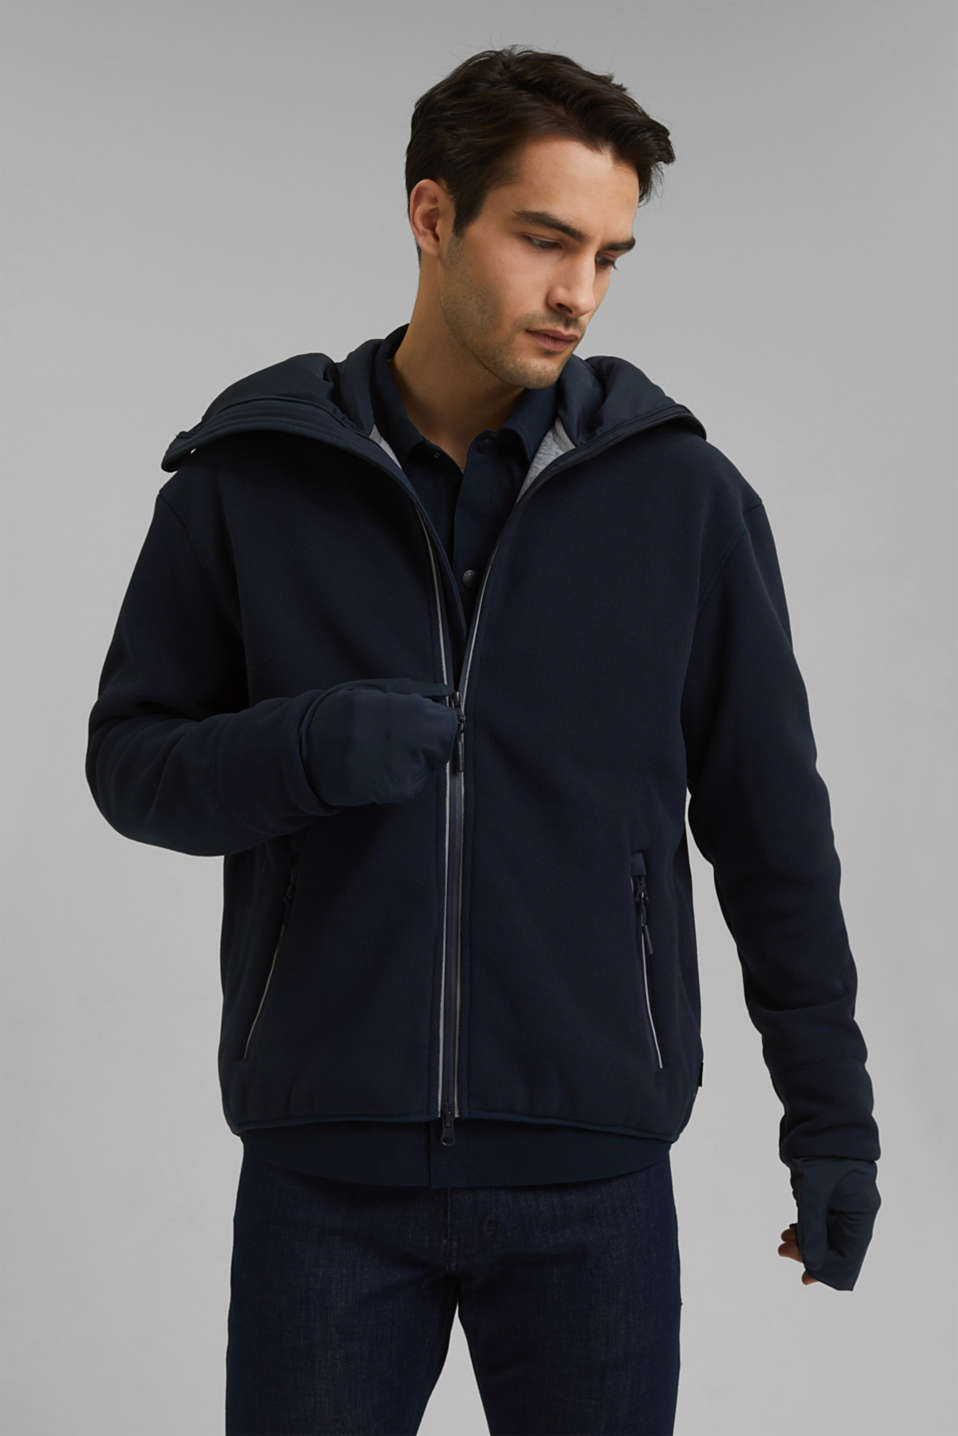 Esprit - #ReimagineFlexibility: functioneel fleece jas